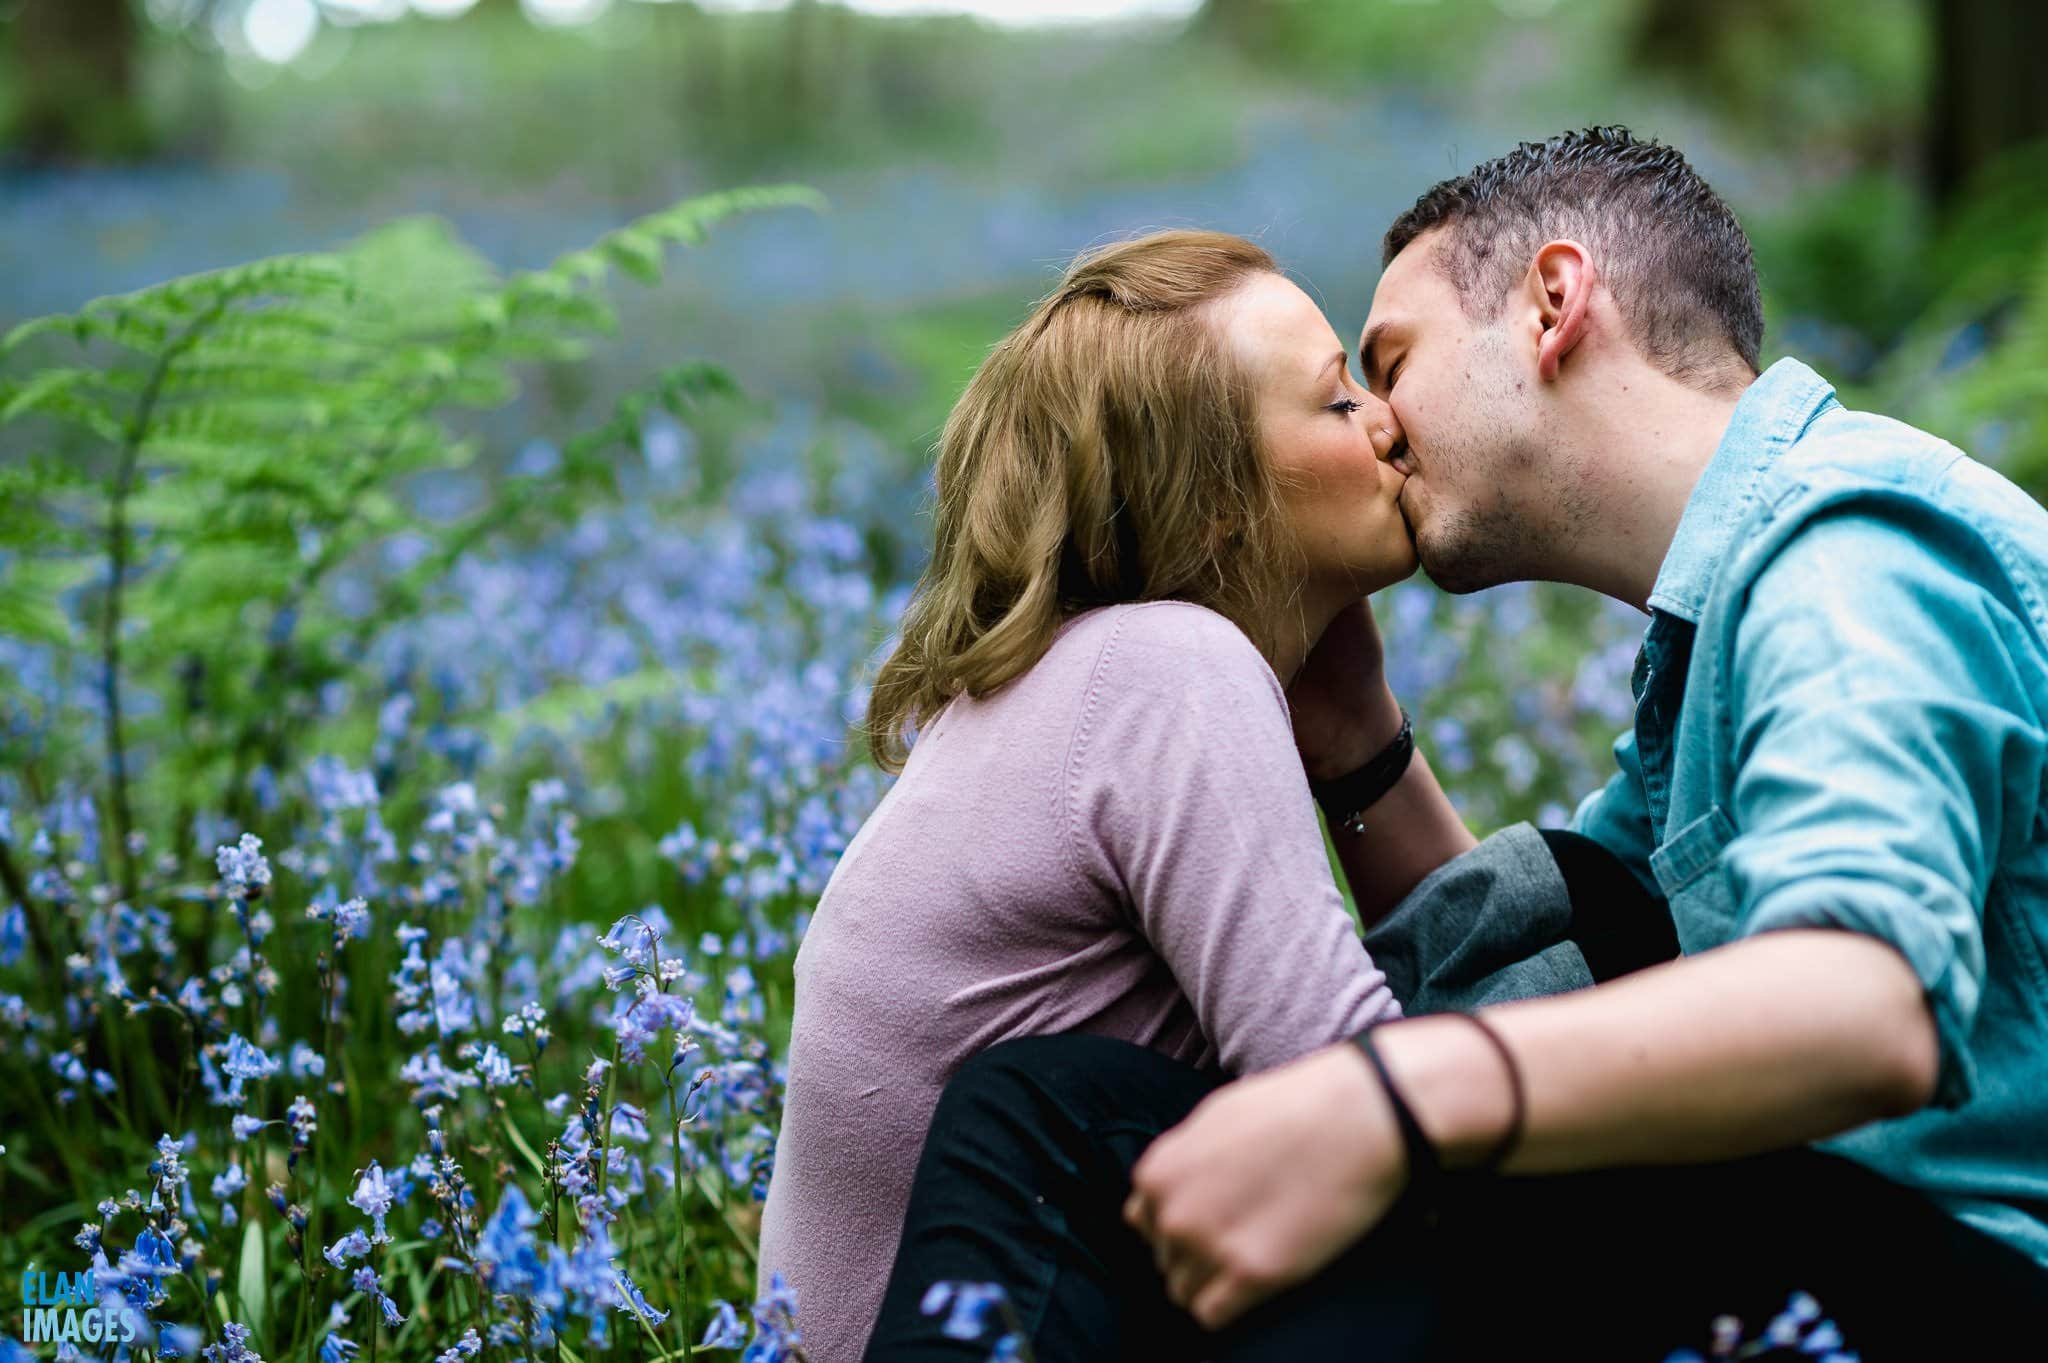 Engagement Photo Shoot in the Bluebell Woods near Bristol 20